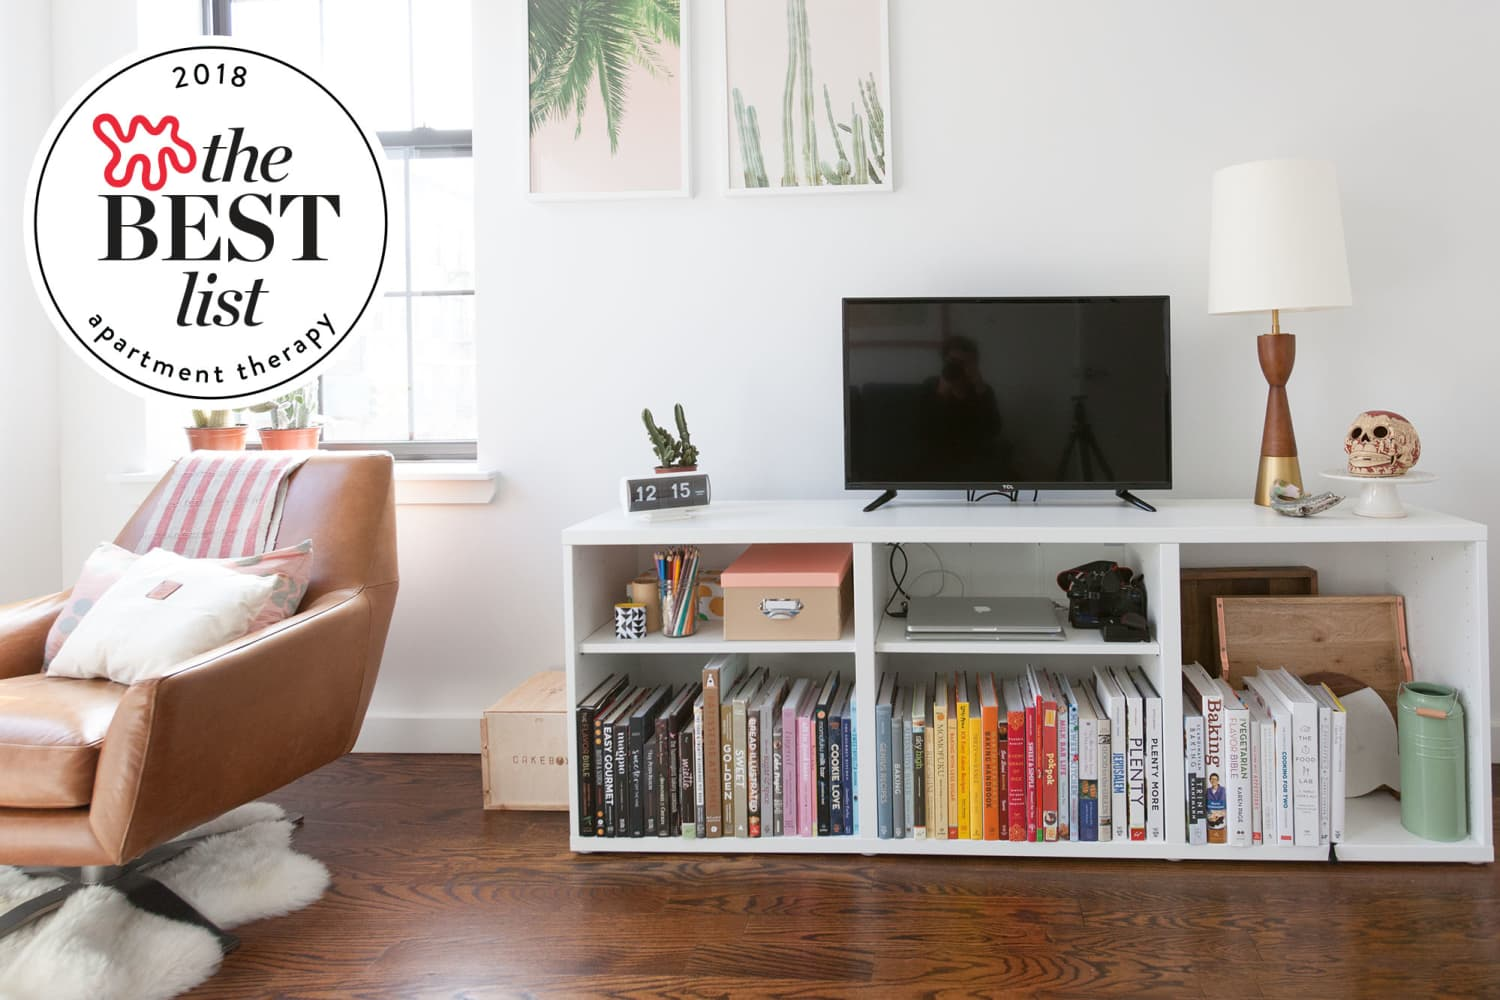 The Best Bookcases and Shelves for Every Budget